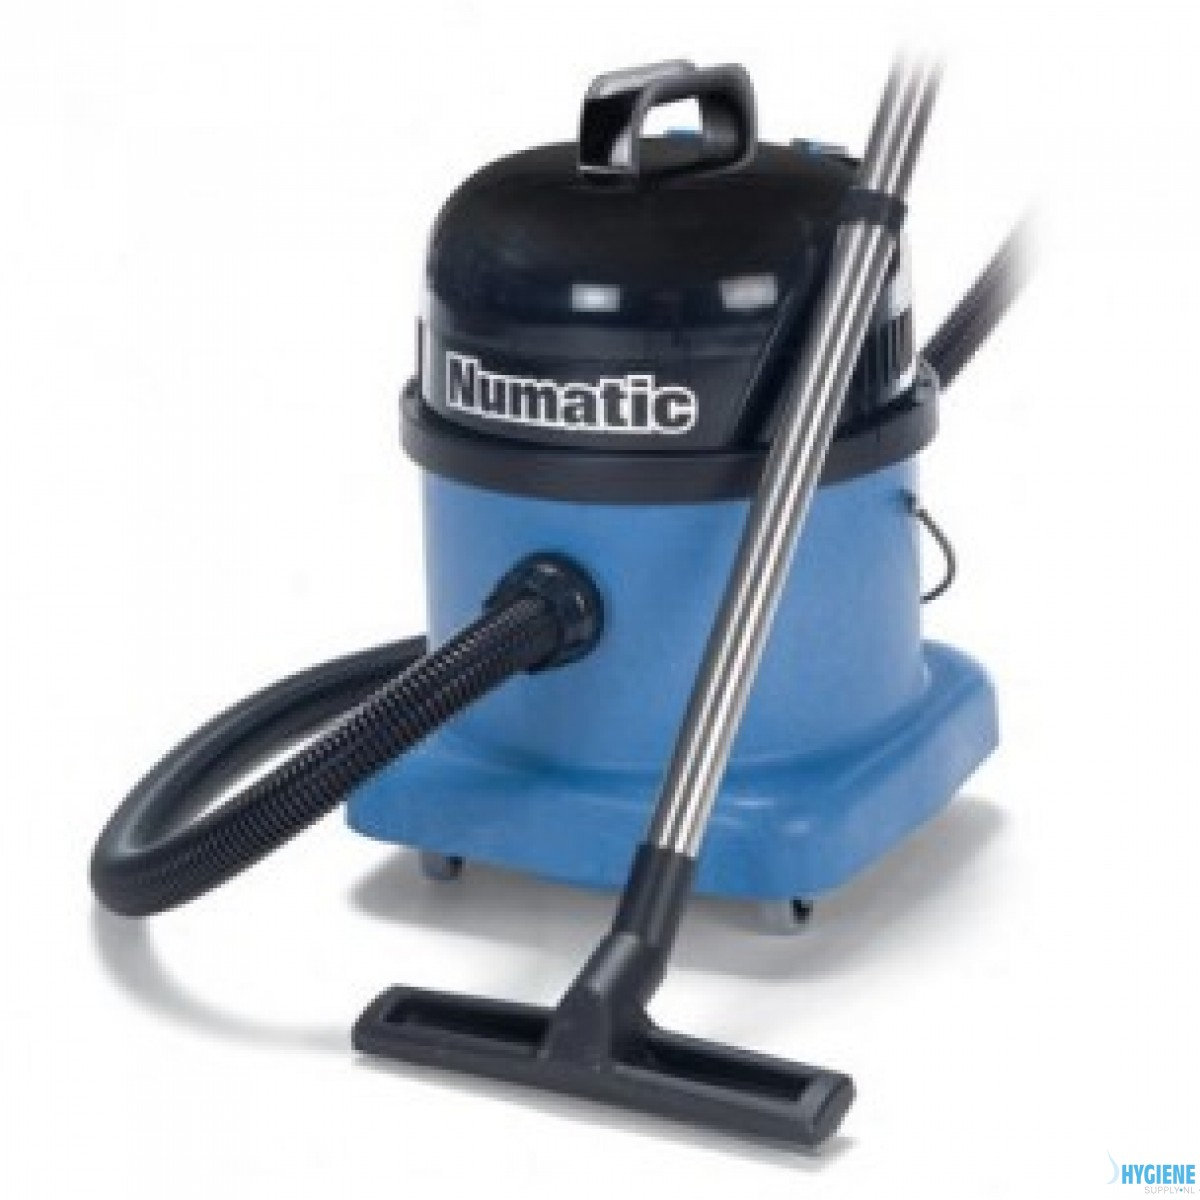 Numatic waterzuiger wet and dry WV380 met Kit A11 706697 Blauw